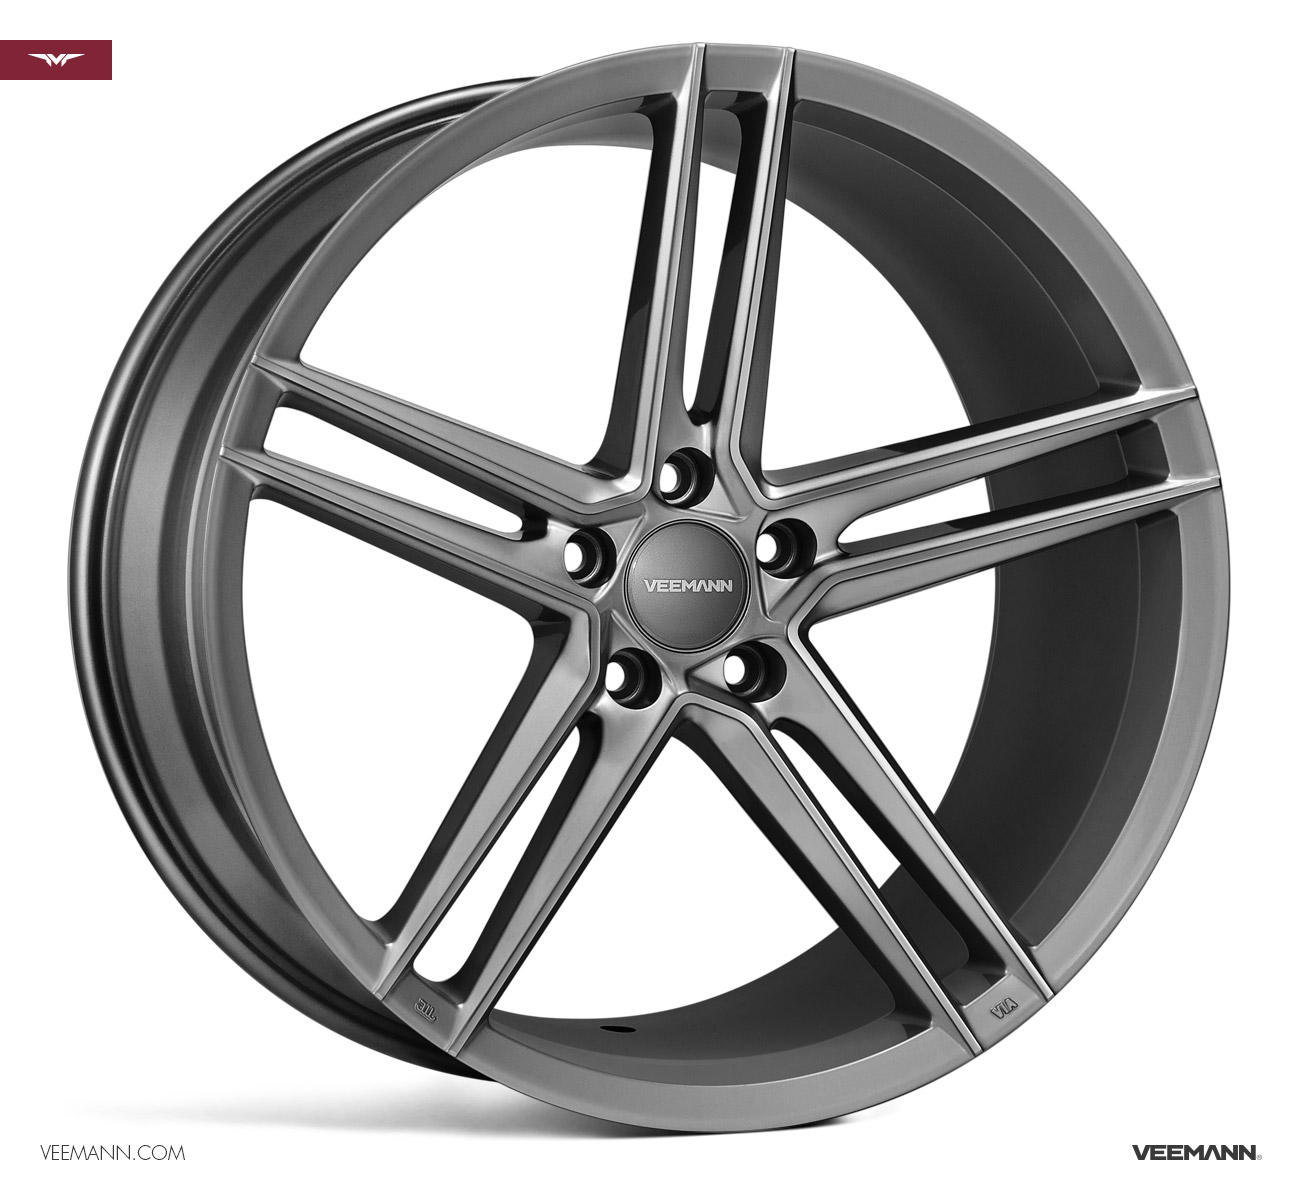 "NEW 19"" VEEMANN V-FS33 ALLOY WHEELS IN GLOSS GRAPHITE WITH WIDER 9.5"" REARS"